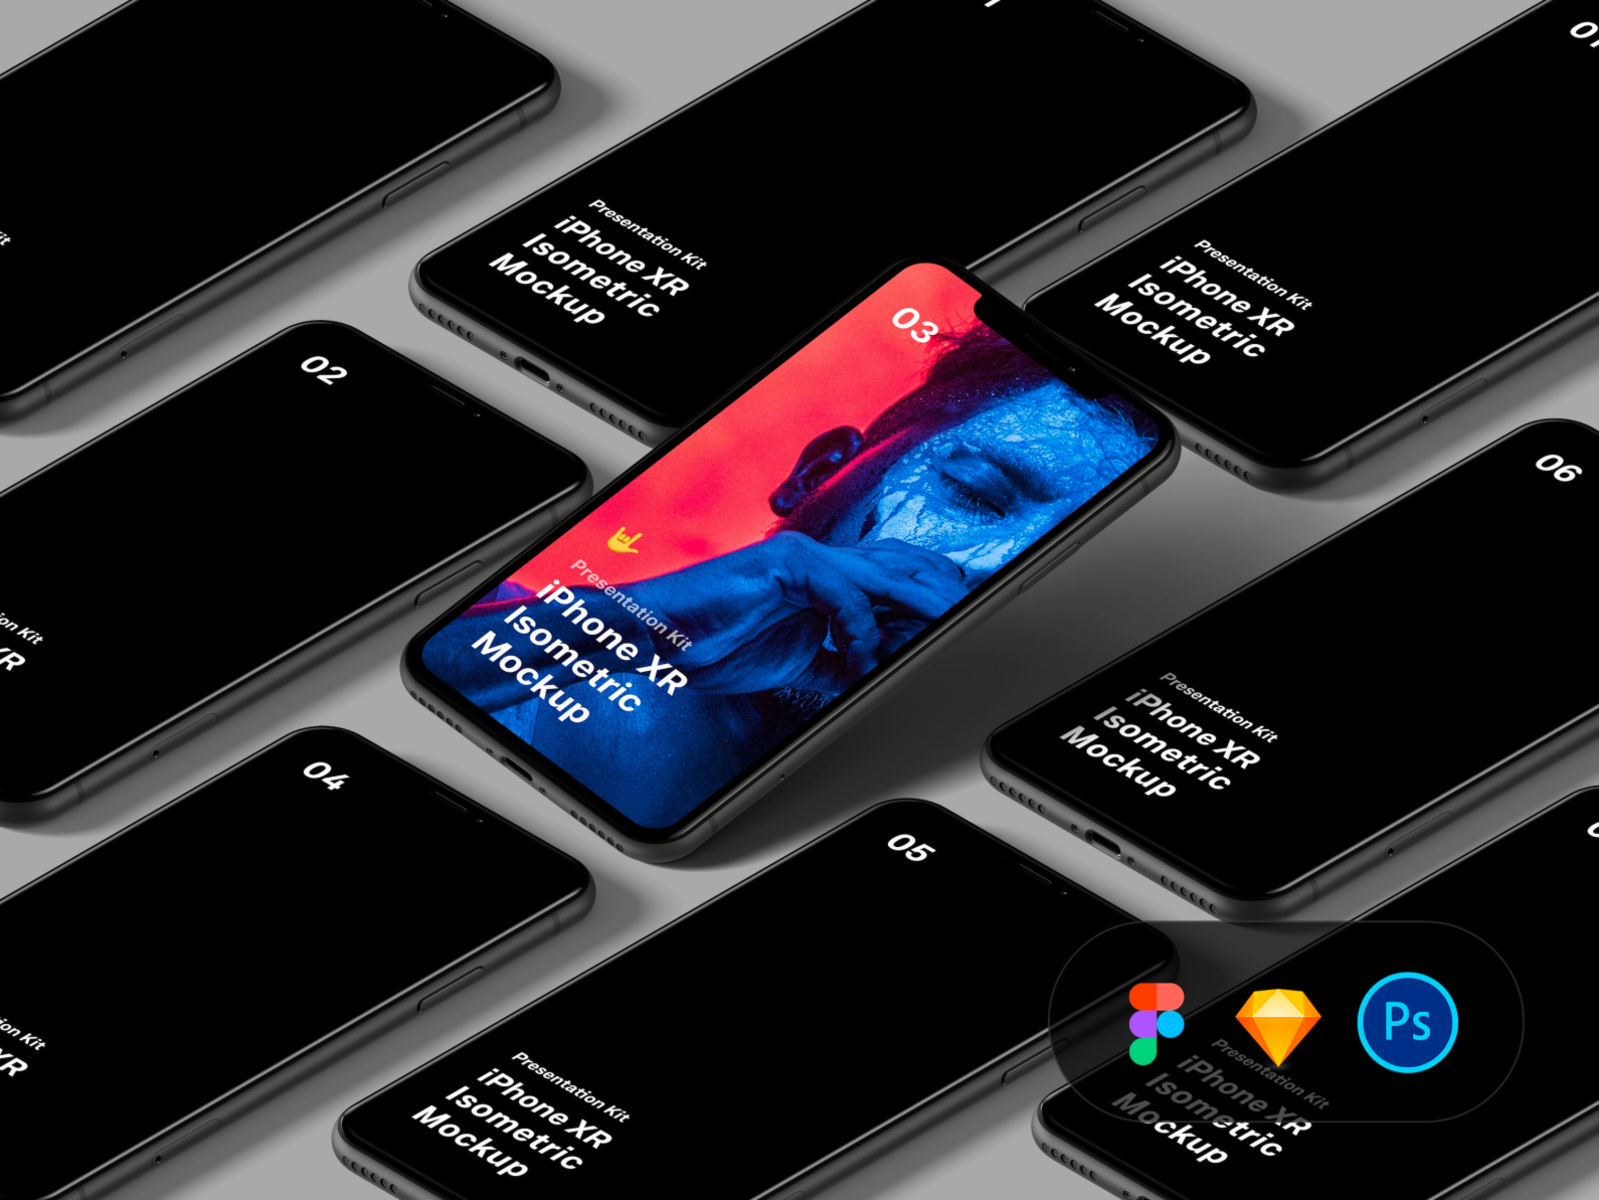 iPhone XR Isometric Mockup - Download Isometric iPhone XR mockups for Figma, Sketch, and Photoshop. Perspective disabled that means that you can change composition, drag-n-drop items to move them around a canvas.